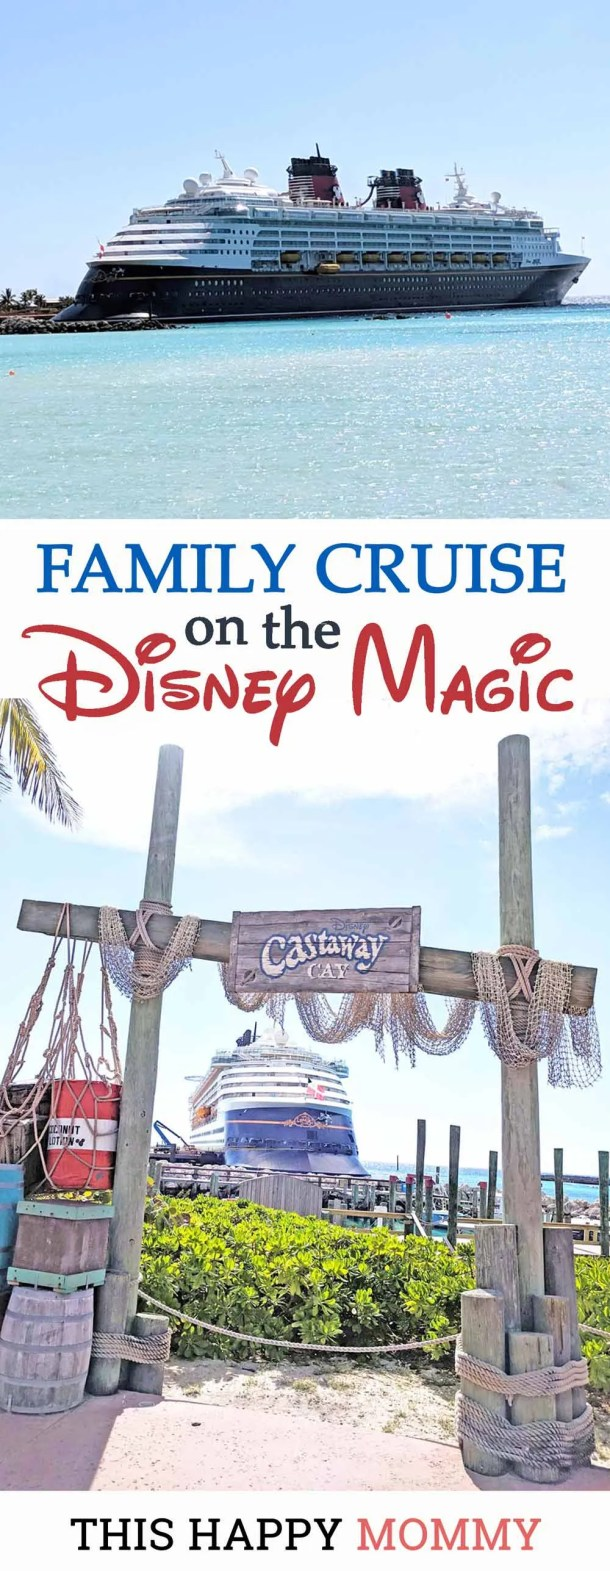 There's something wonderful about a holiday. When you are on a Disney cruise, the holiday is even more magical. Our first family cruise on the Disney Magic was more memorable that we could have imagined! Disney Cruise Tips | Disney Cruise Tips for You | Disney Cruise Review | Traveling with Young Kids | Family Vacation | First Time Tips | #travel #family #kidstravel #disneycruise #vacation | thishappymommy.com